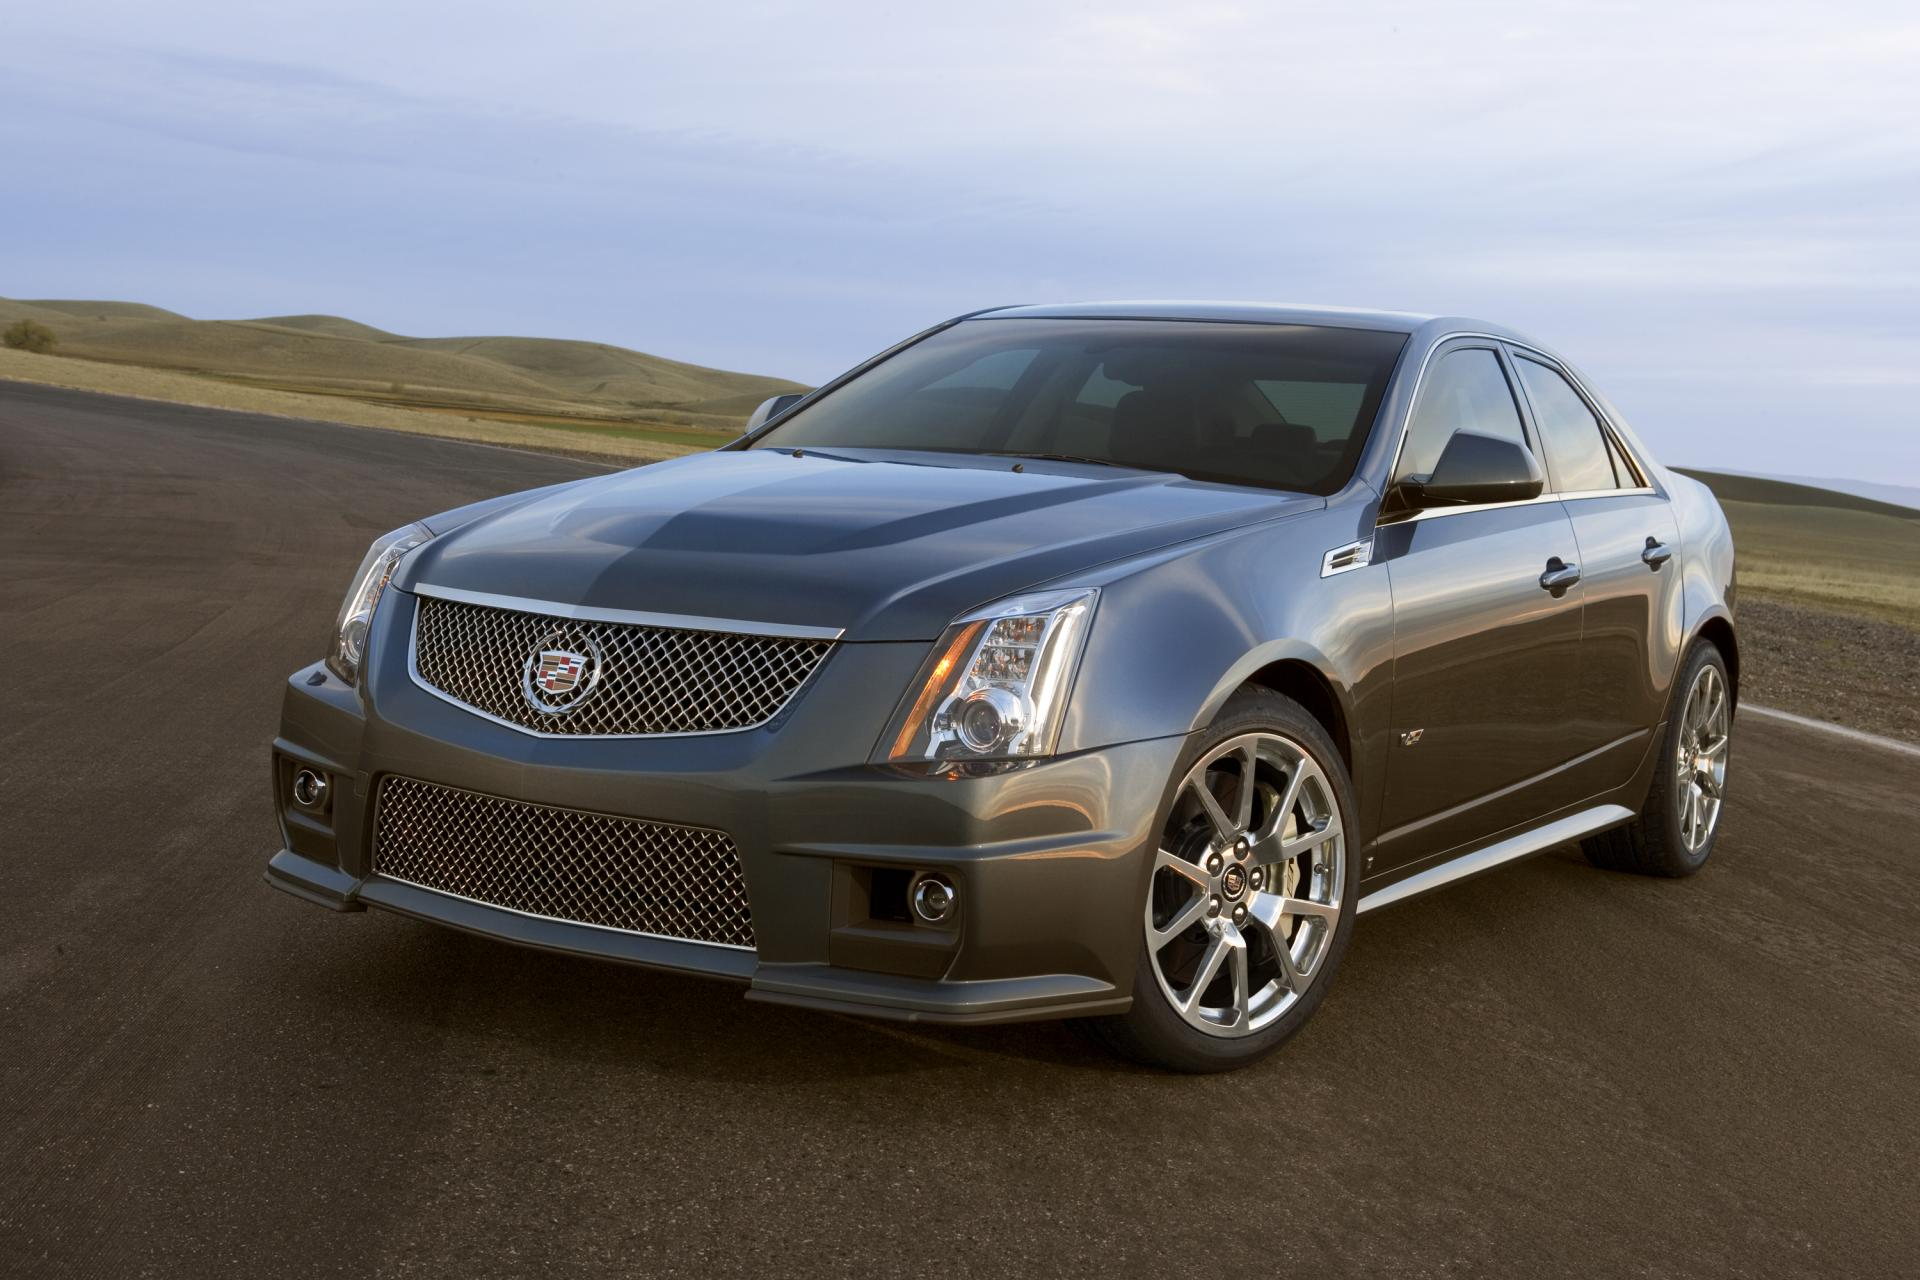 gm cts cadillac links cadilac blog authority prices img for sale sponsored pricing coupe